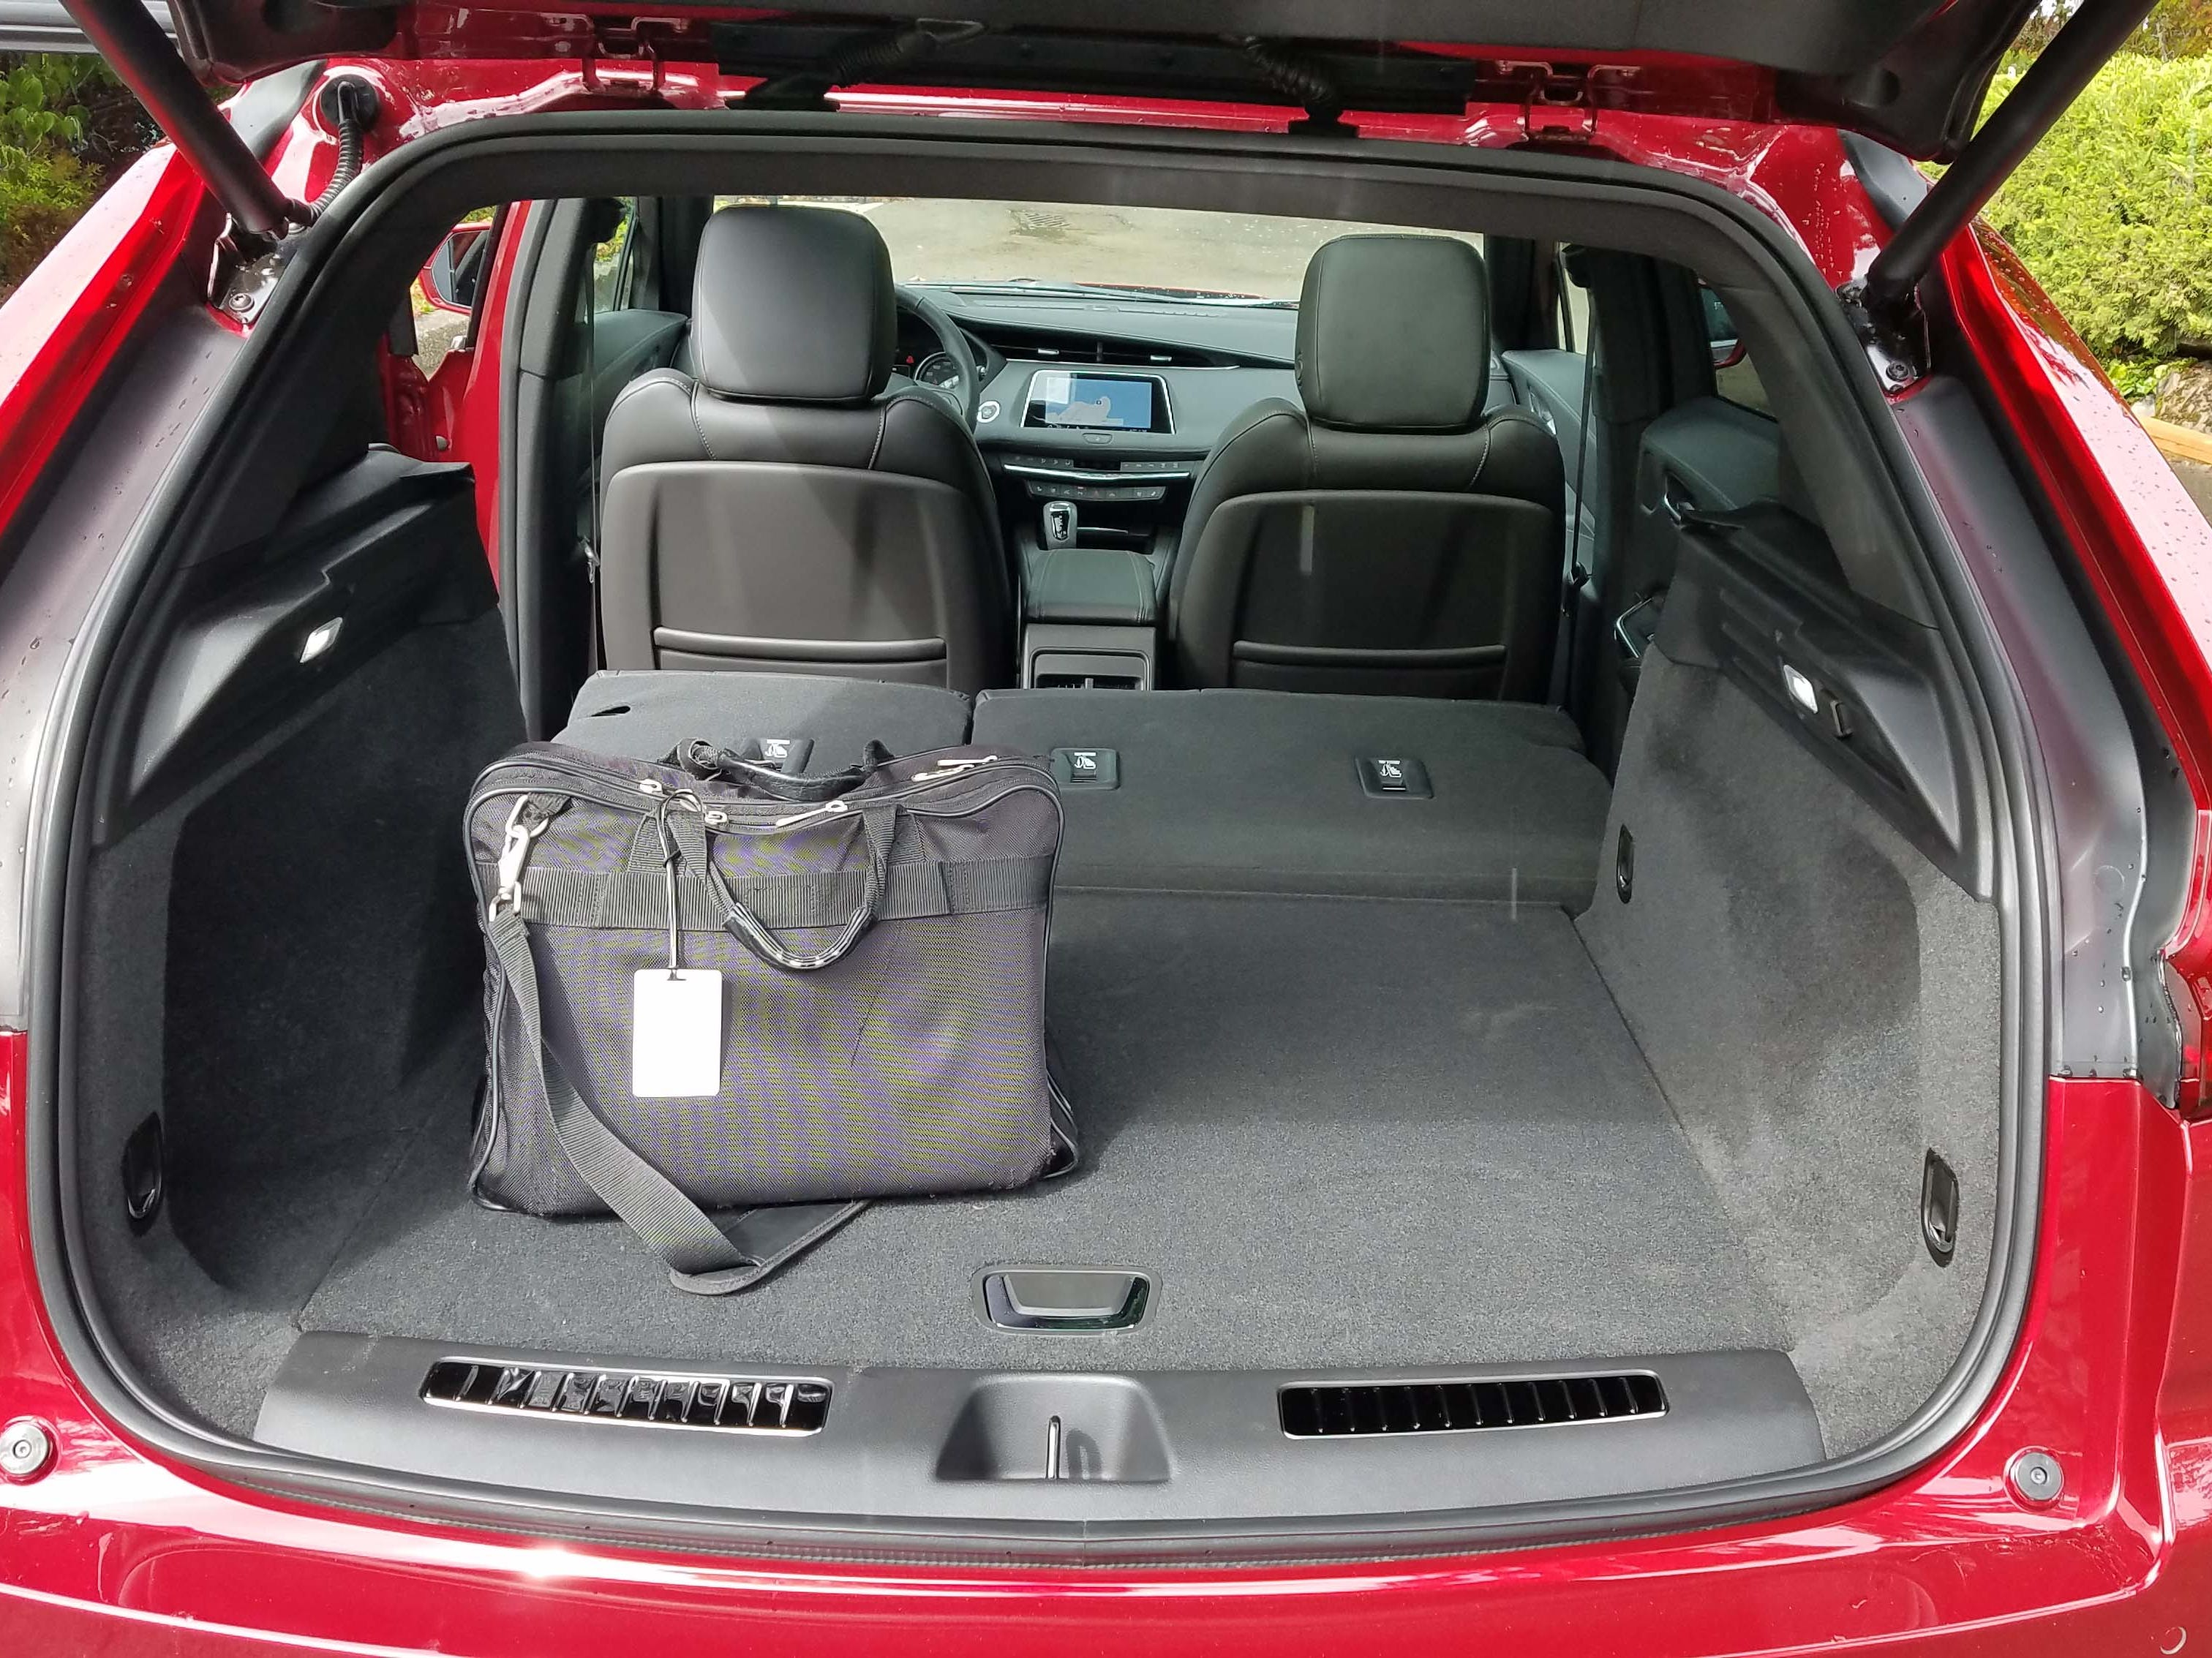 Despite a raked, sporty rear roof and best-in-class rear leg room, the 2019 Cadillac XT4's rear hatch provides adequate space to store two golf bags.